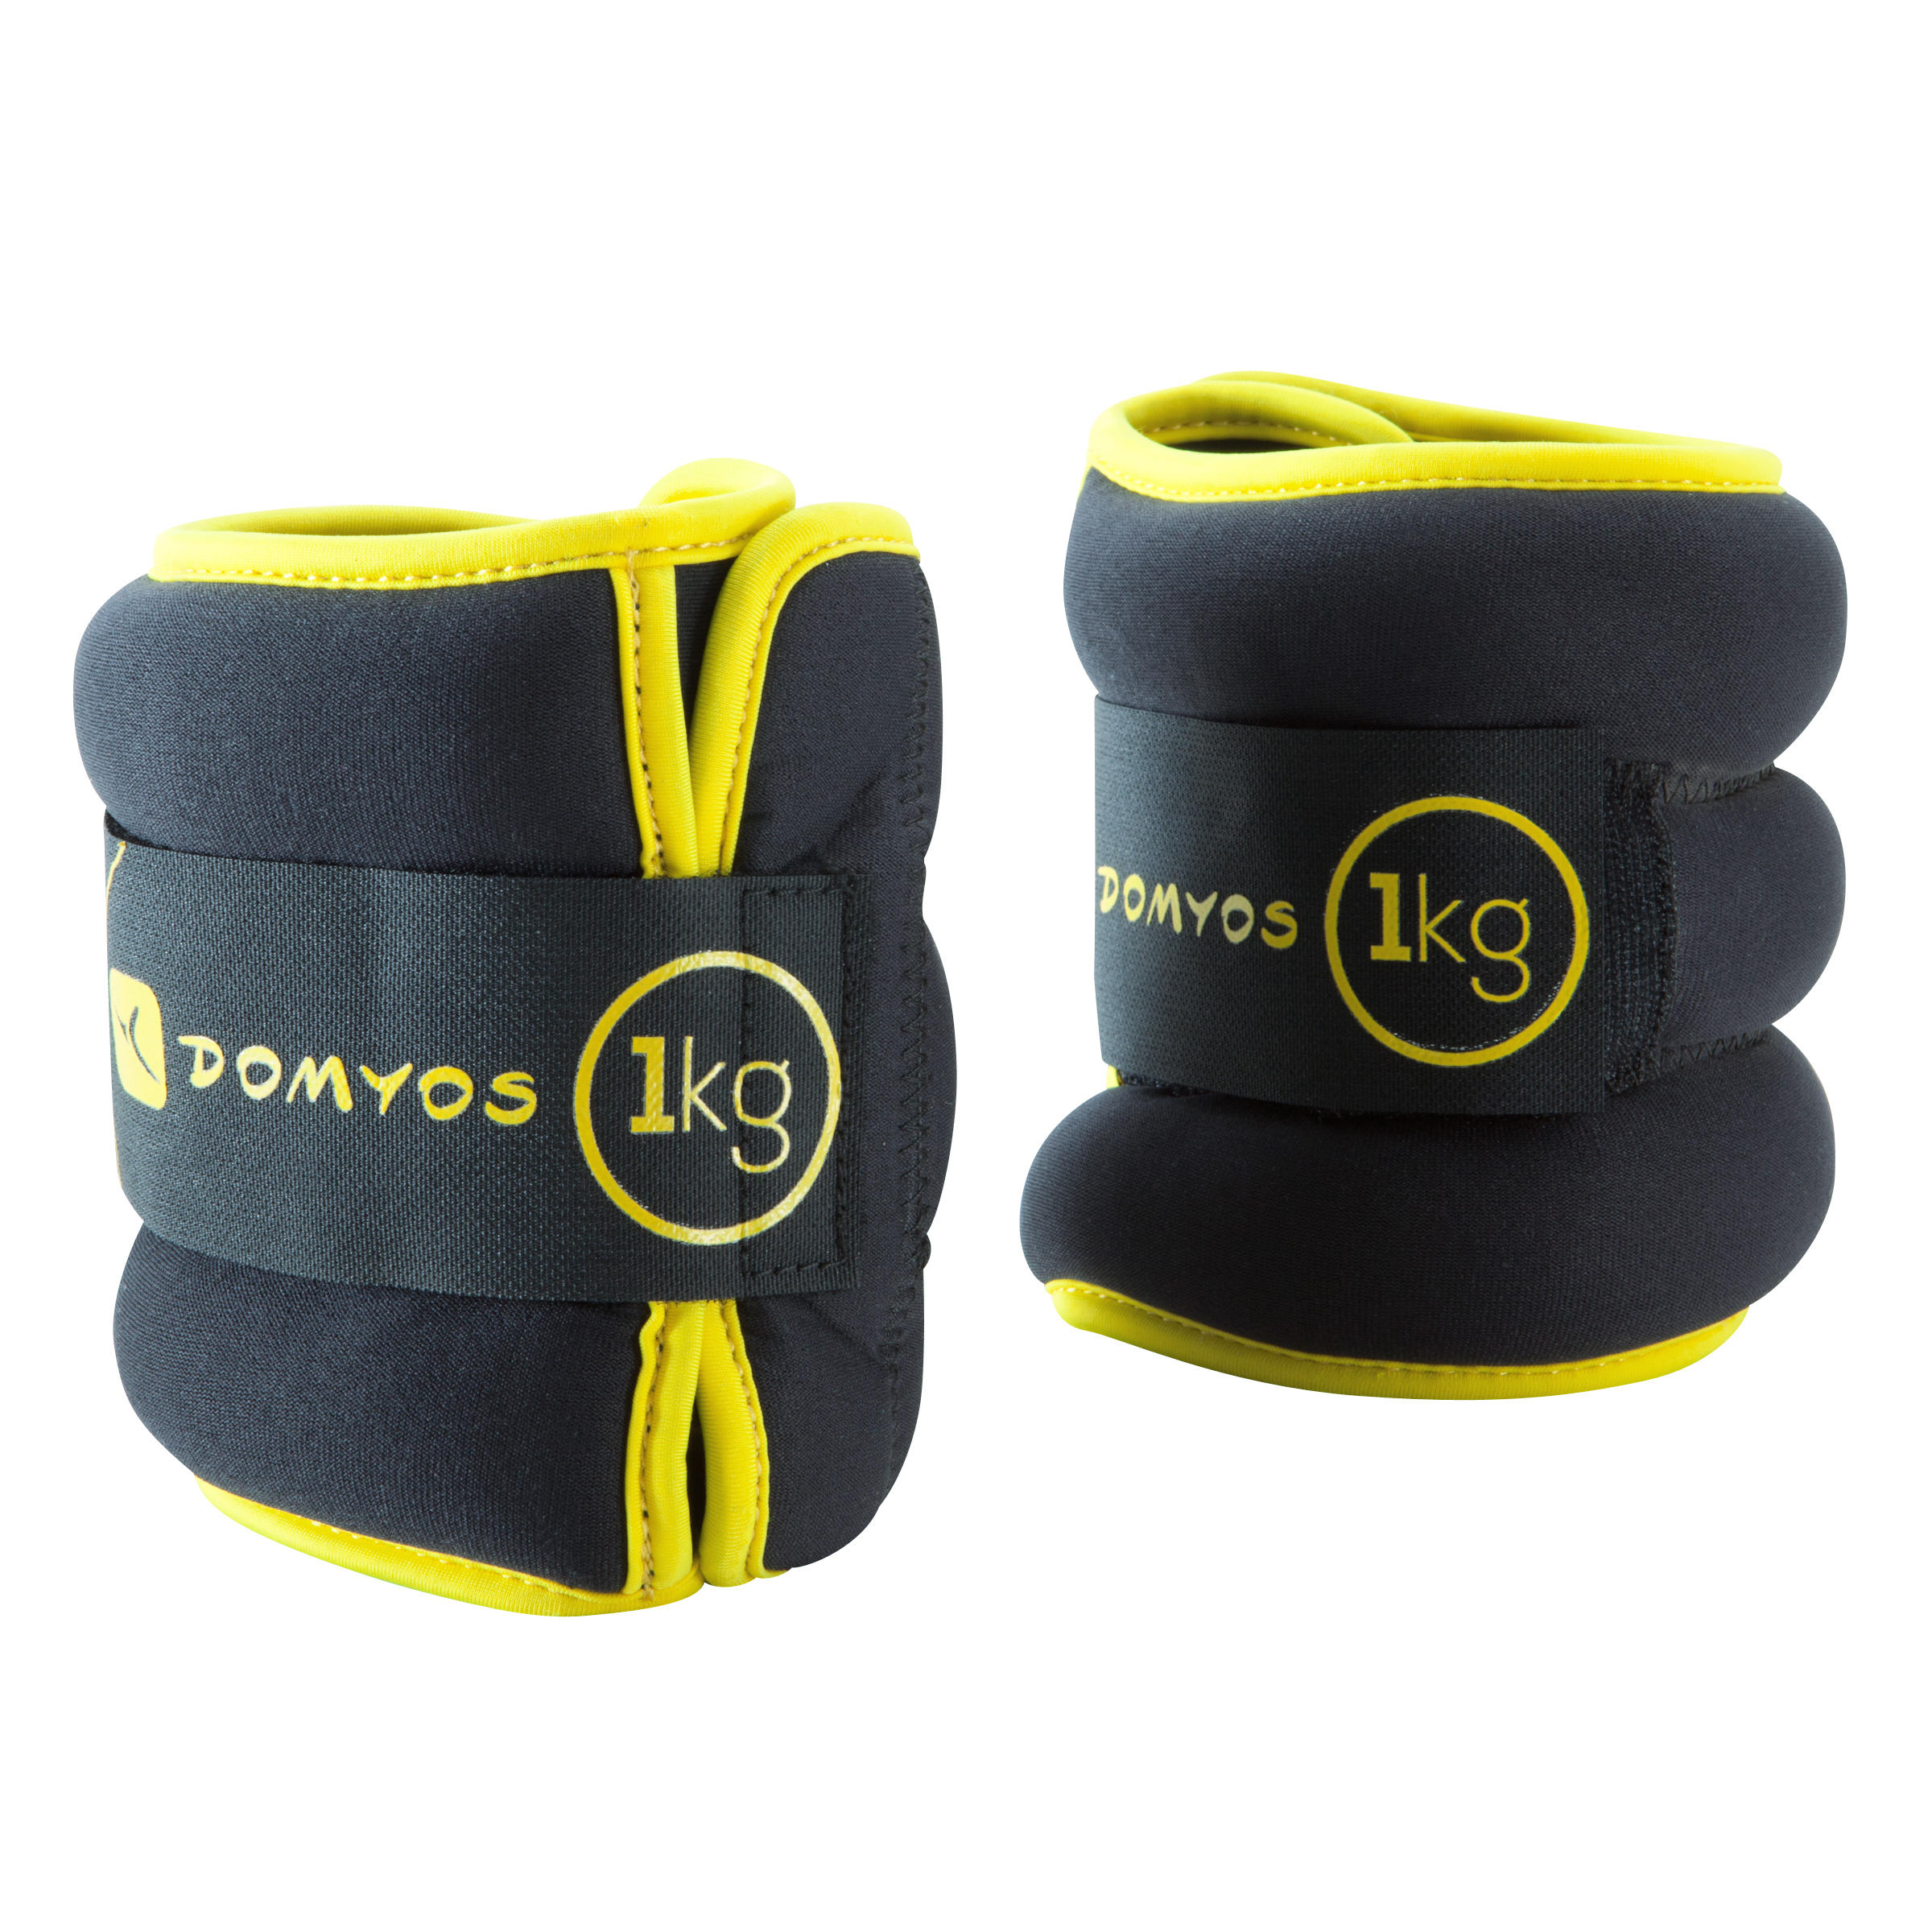 1 kg Flexible Ankle and Wrist Weights